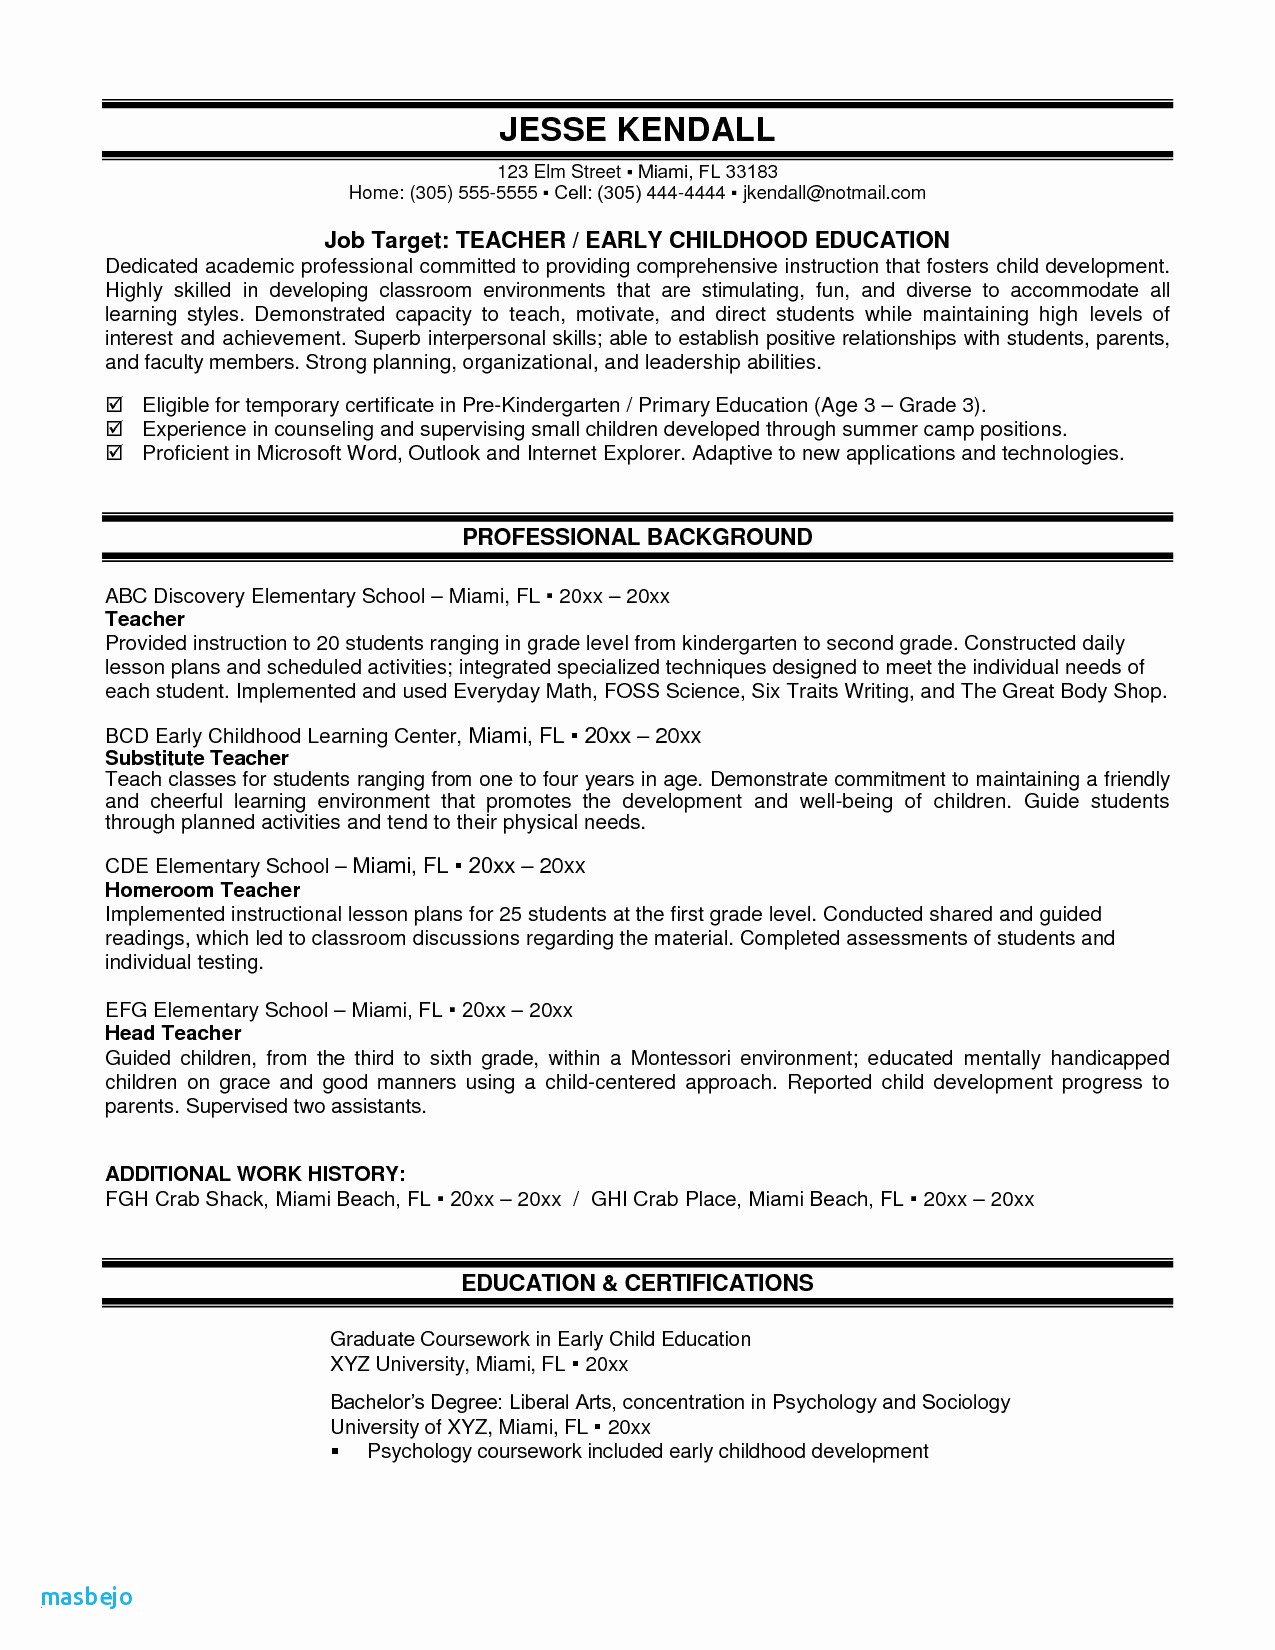 Child Care Resume - 25 New Child Care Resume Examples